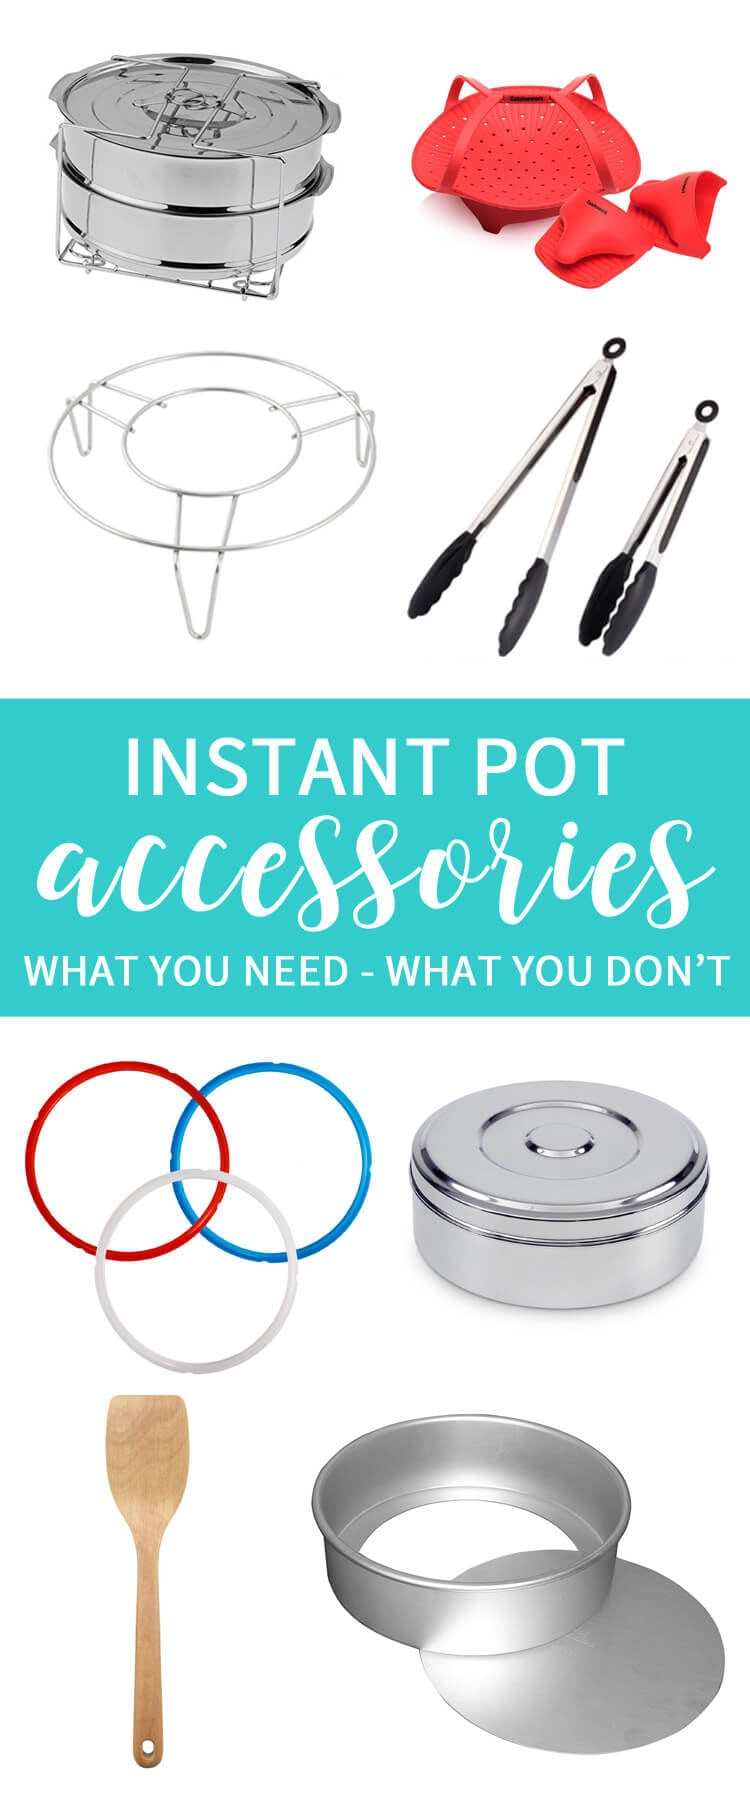 Instant Pot Accessories - What you need and what you don't.